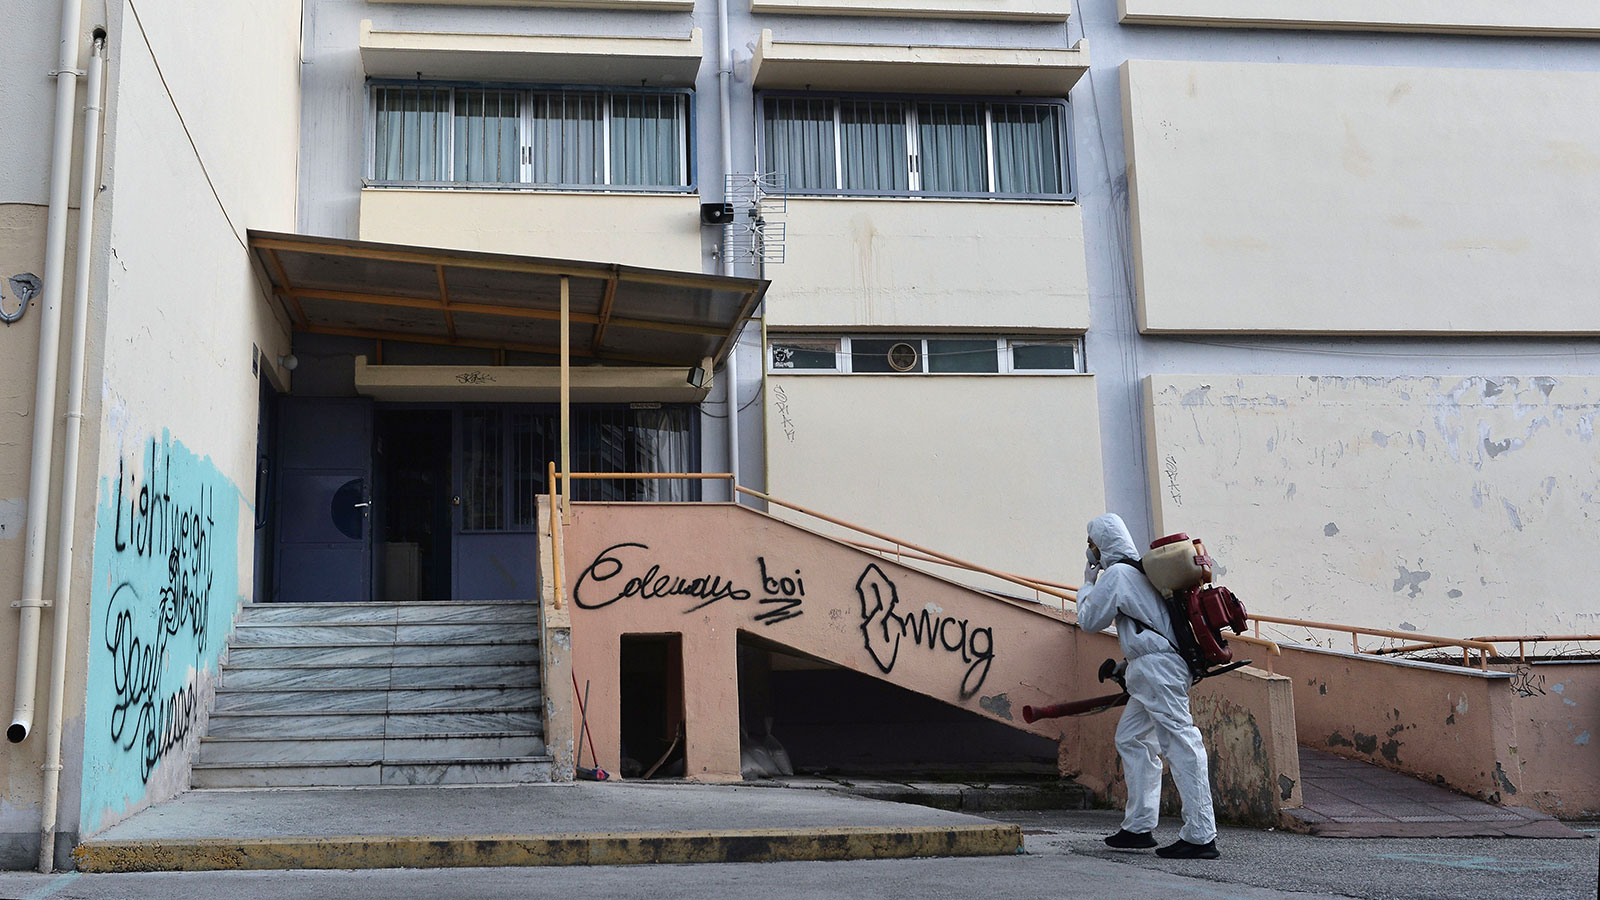 A worker sprays disinfectant as part of preventive measures against the spread of the COVID-19, the novel coronavirus, in a school in Thessaloniki, Greece on February 27.